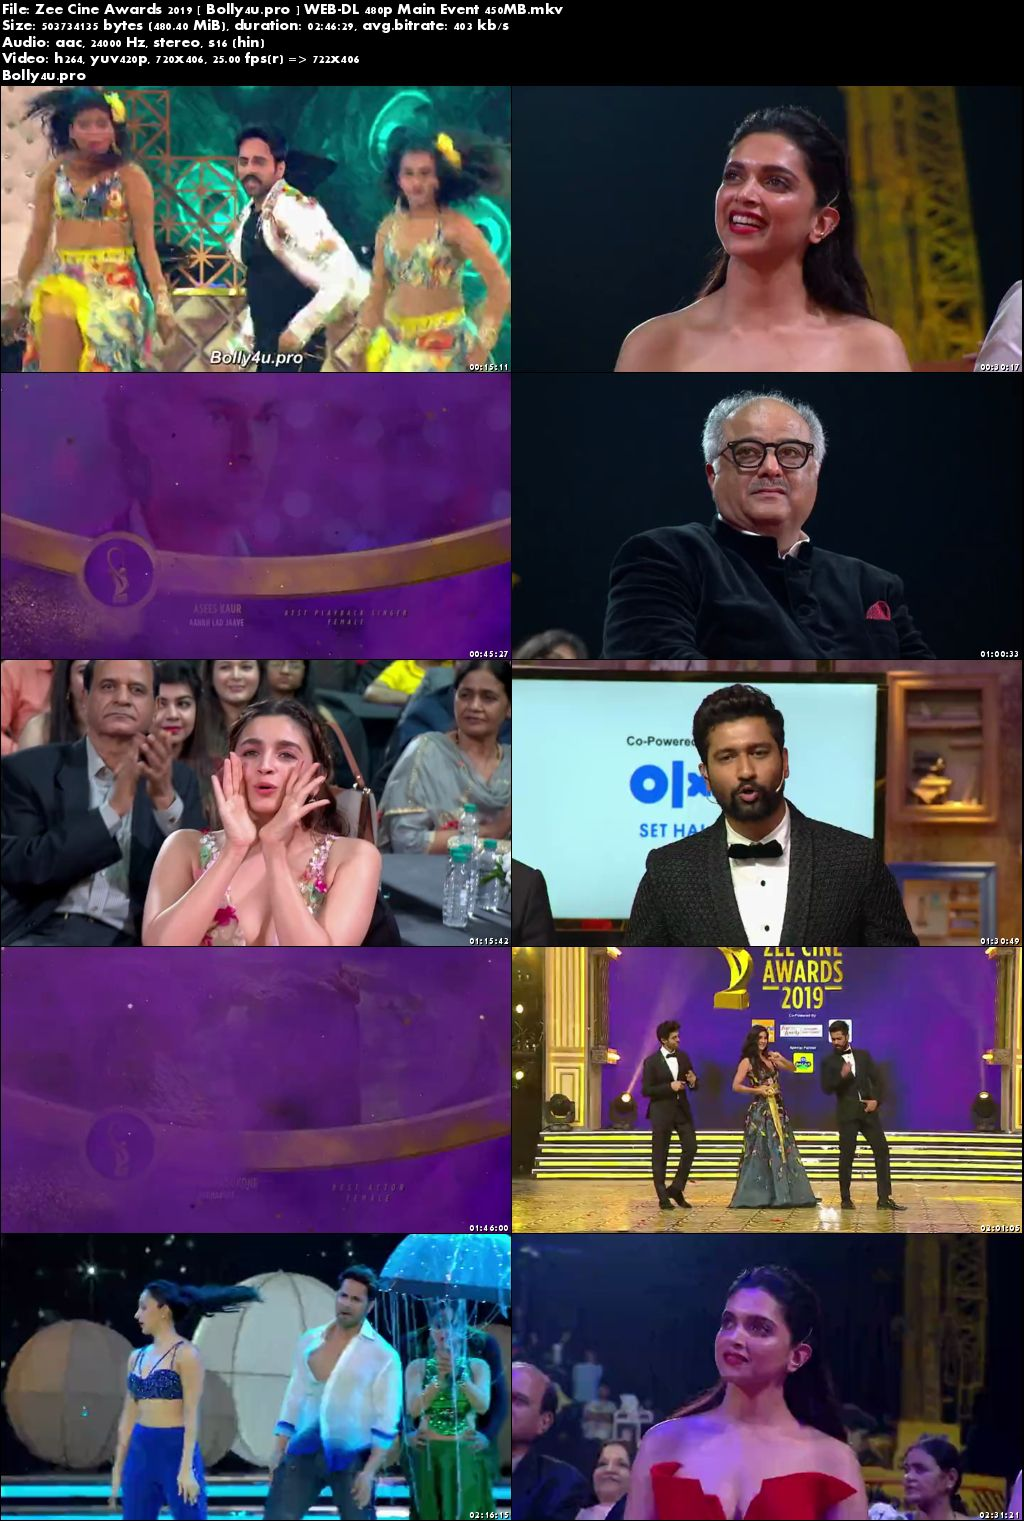 Zee Cine Awards 2019 WEB-DL 480p Main Event 450MB Download